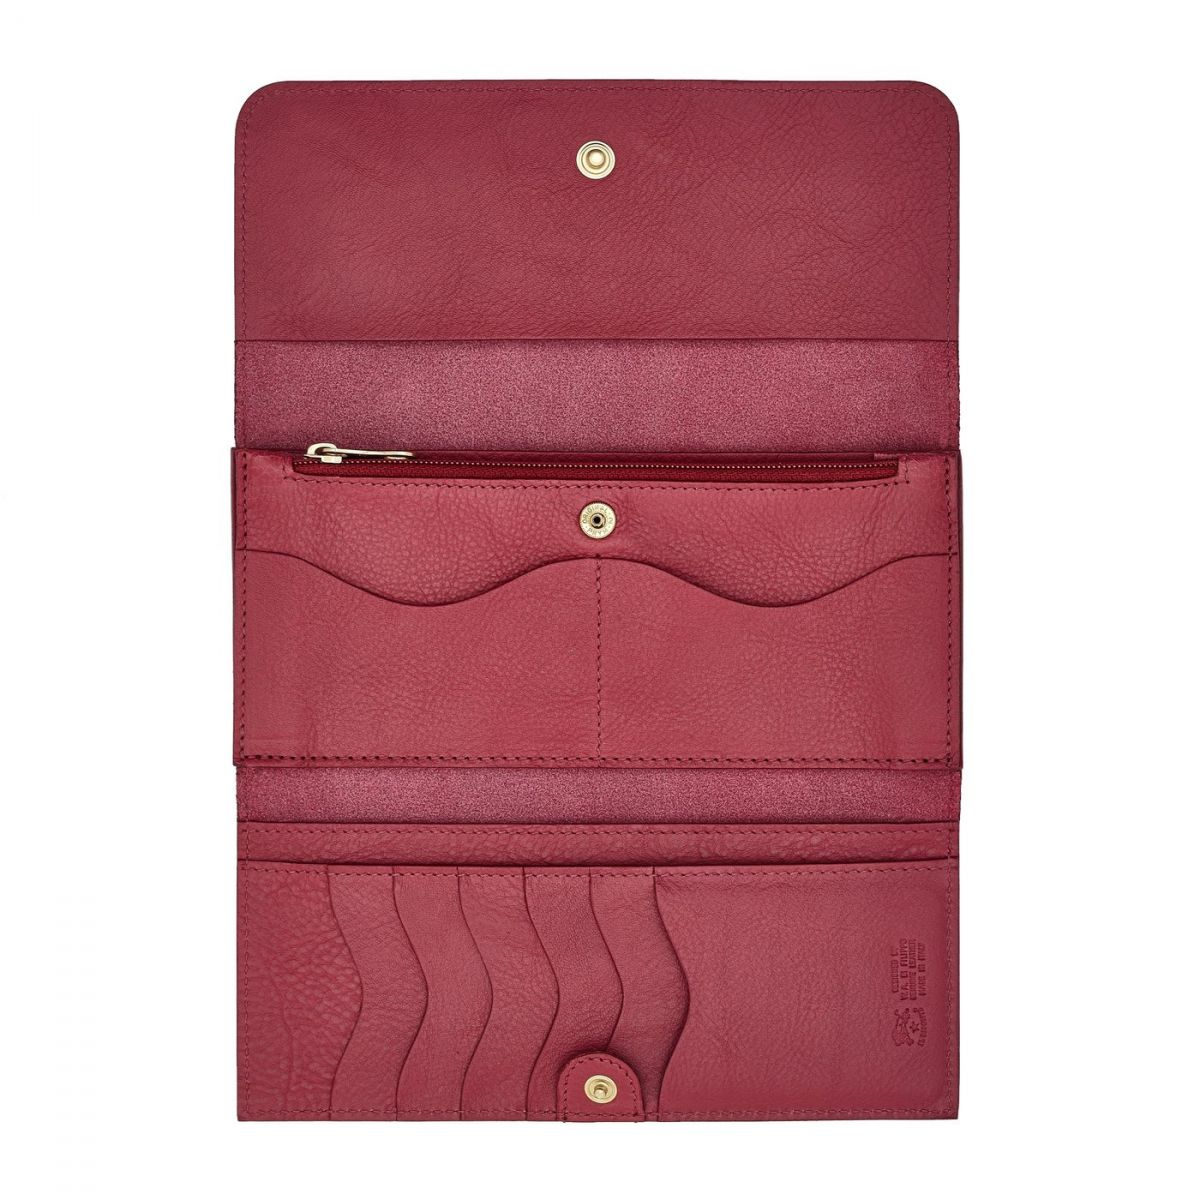 Women's Continental Wallet  in Cowhide Leather SCW009 color Sumac | Details